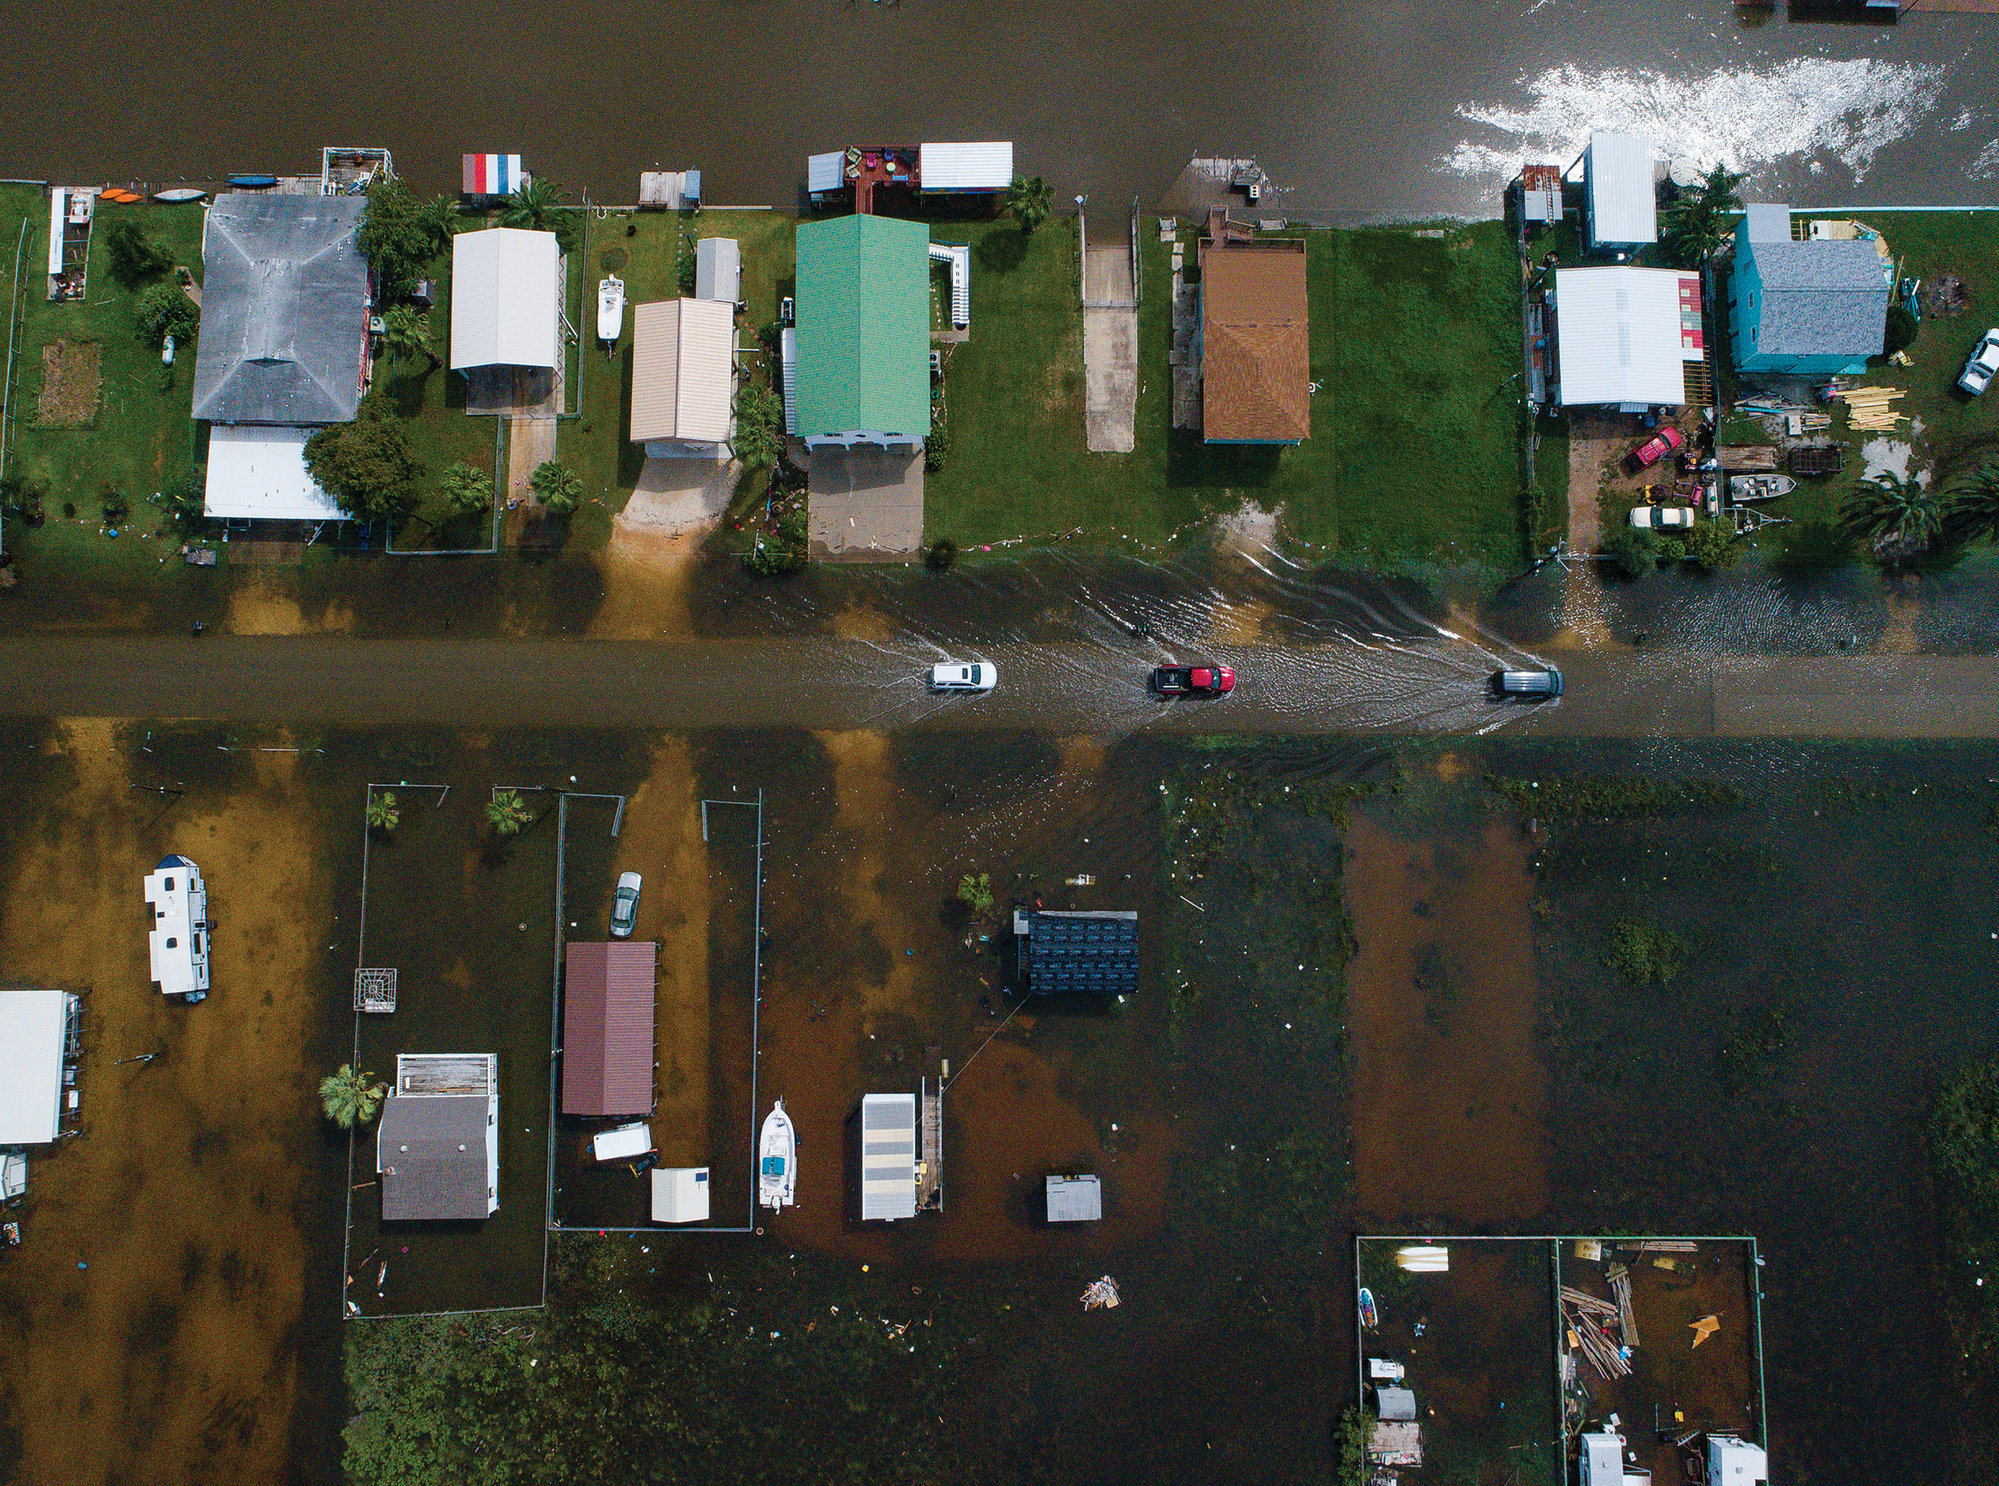 Mark Mulligan/Houston Chronicle via APCars drive on a flooded street in Sargent, Texas, as seen in this aerial photo Wednesday. Sargent received 22 inches of rain since tropical storm Imelda hit the area on Tuesday, according to Matagorda County Constable Bill Orton.